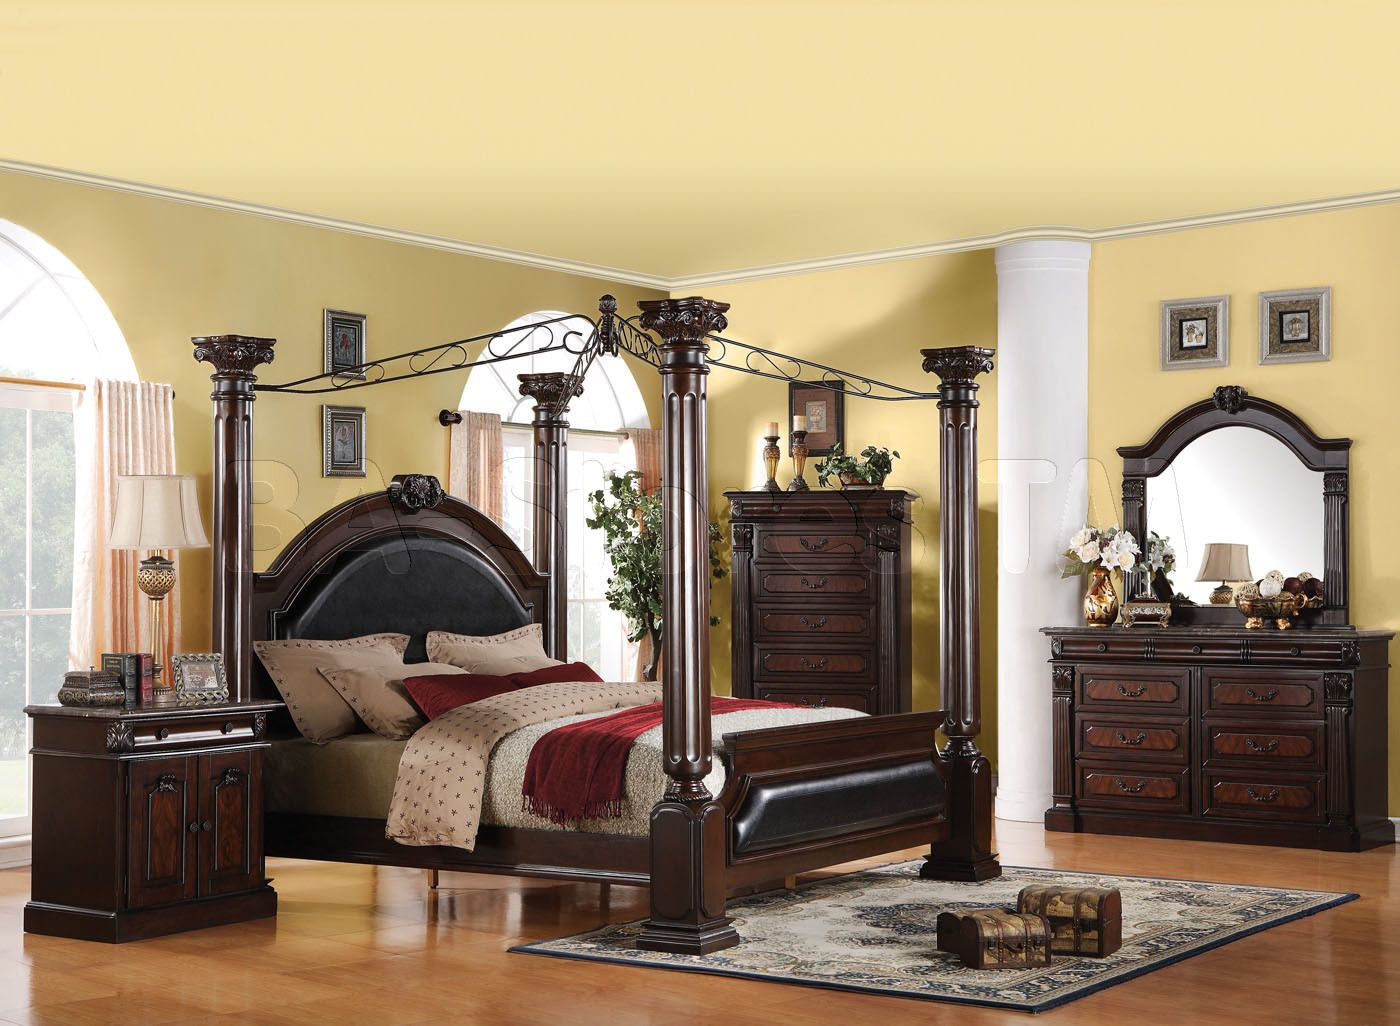 Good 5 Pc Roman Empire Collection Dark Cherry Finish Wood Queen 4 Poster Bedroom  Set With Metal Canopy. This Set Includes The Queen Bed Set, One Nightstand,  ...